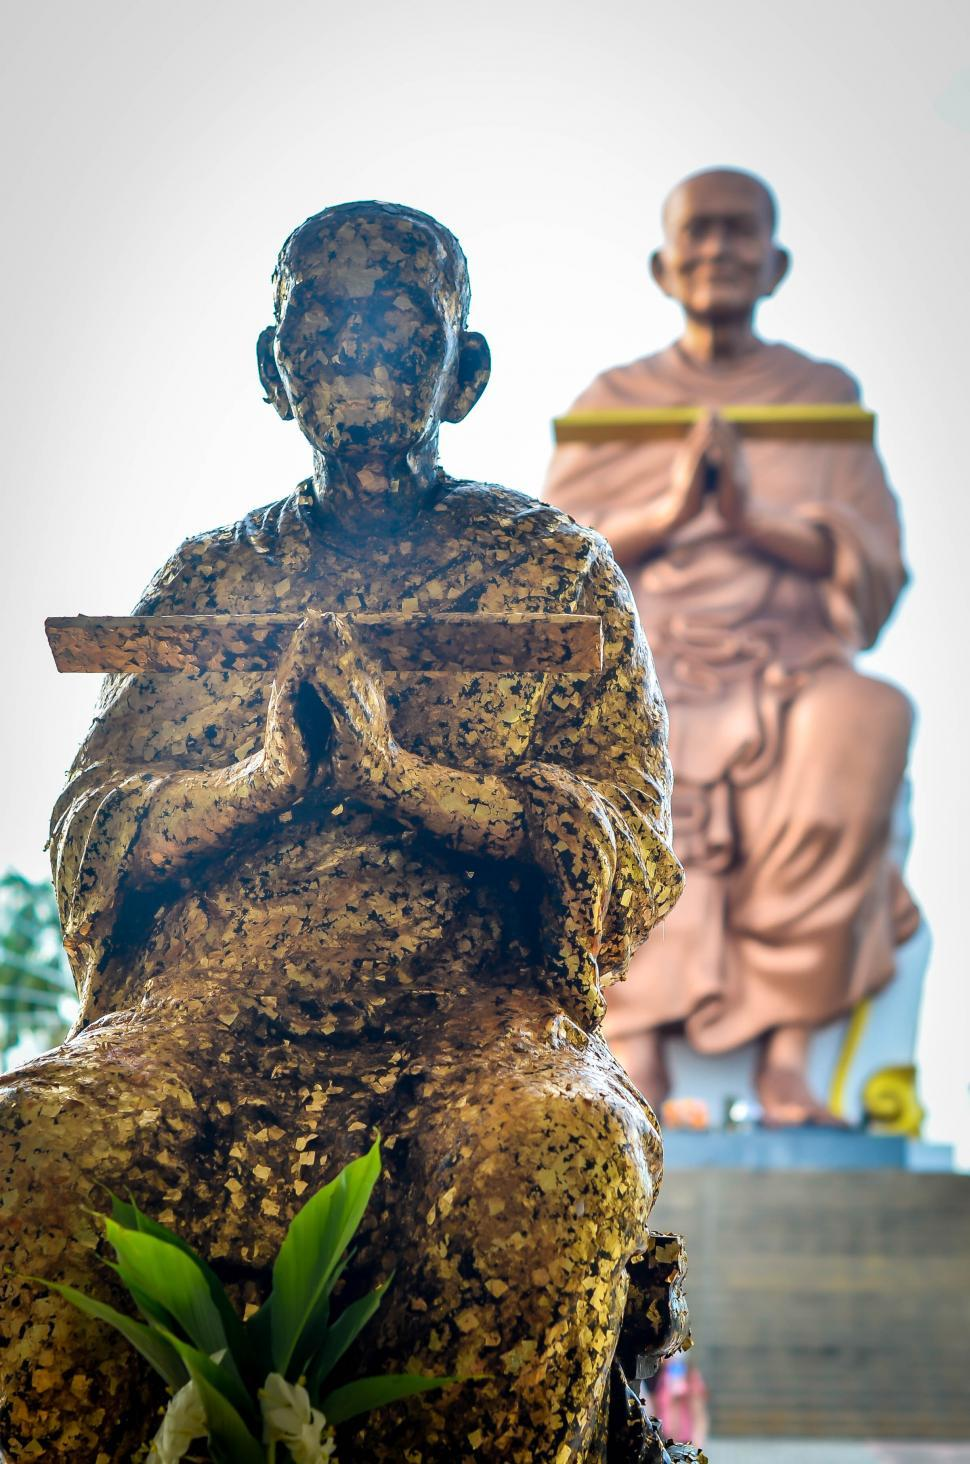 Download Free Stock HD Photo of Monk Statues in Thailand  Online